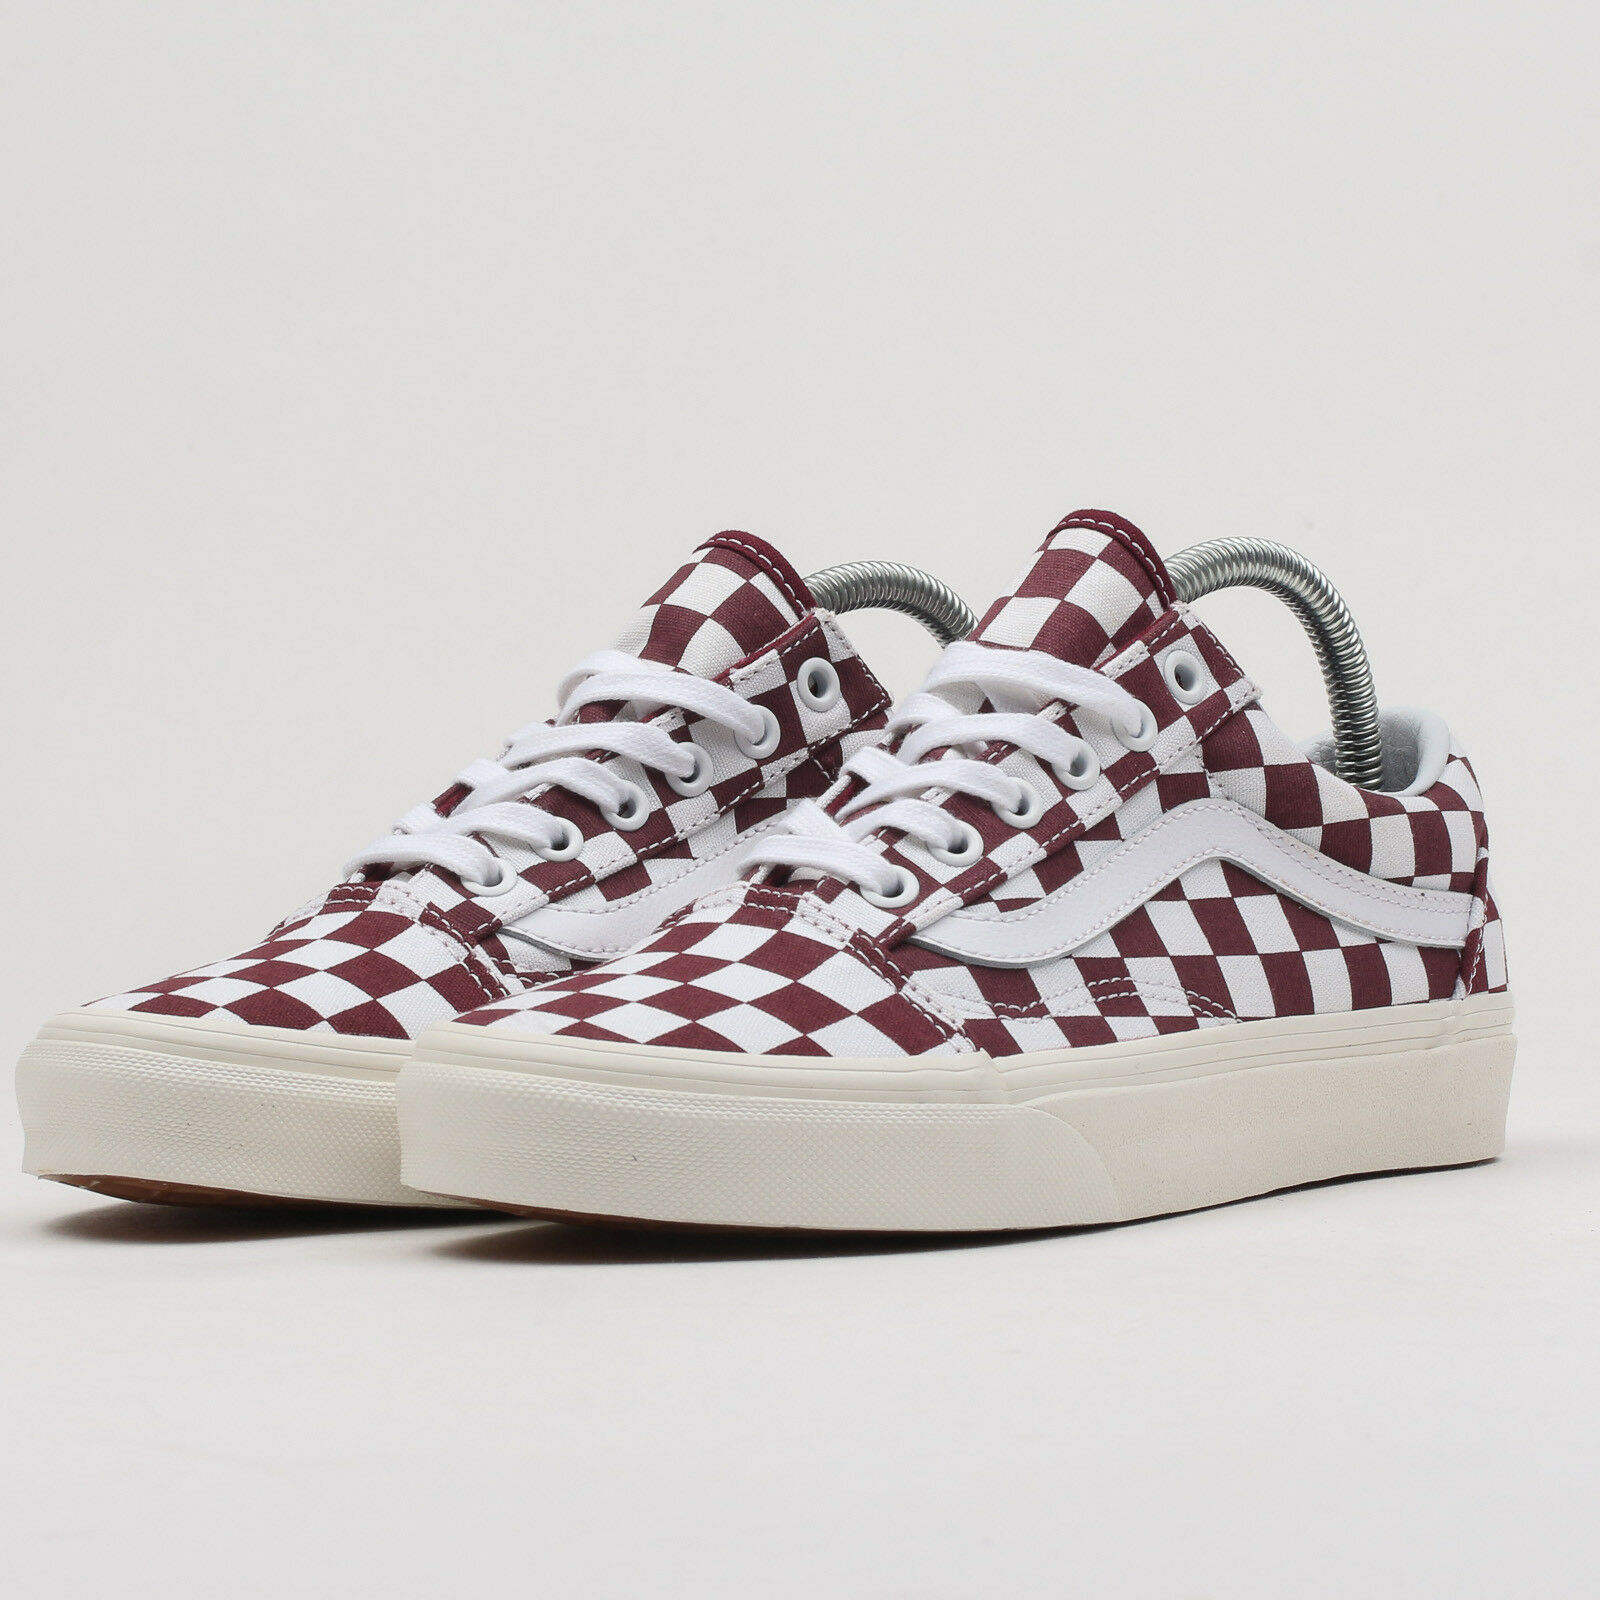 Vans Old Skool (checkerboard) Frauen port royal EU 41, Frauen (checkerboard) c831e0